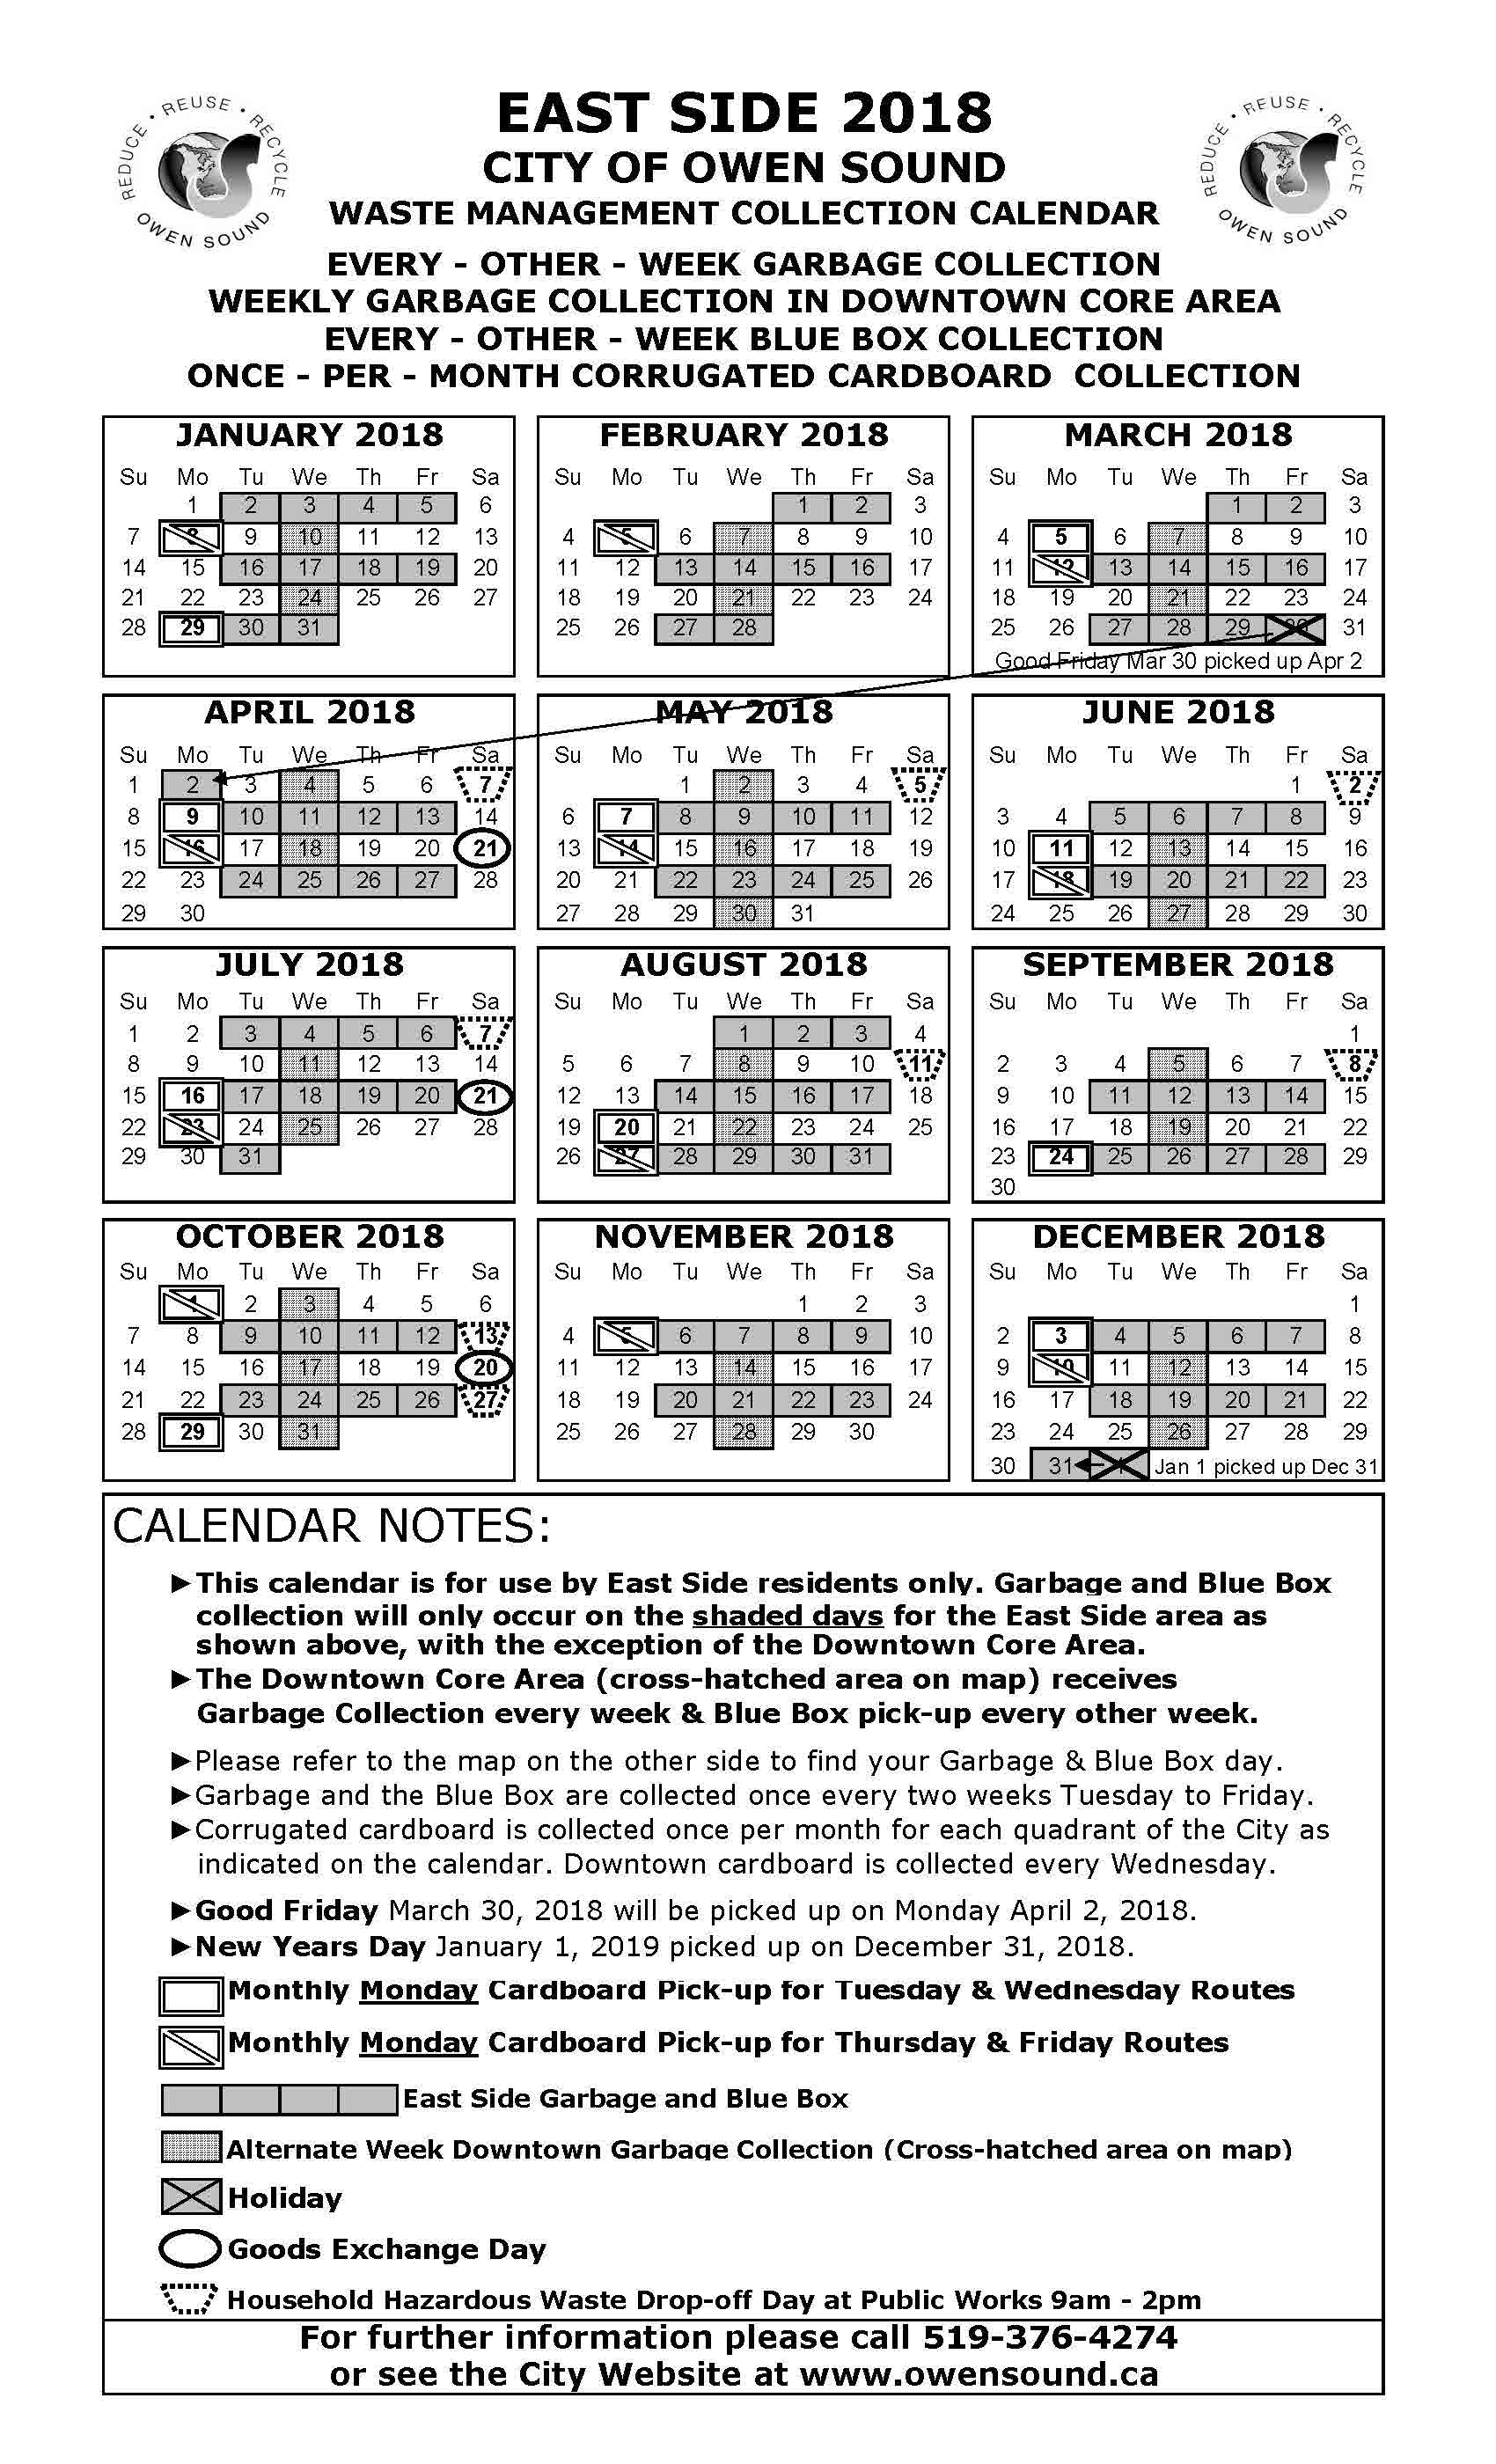 2018 East Side Garbage Collection Calendar